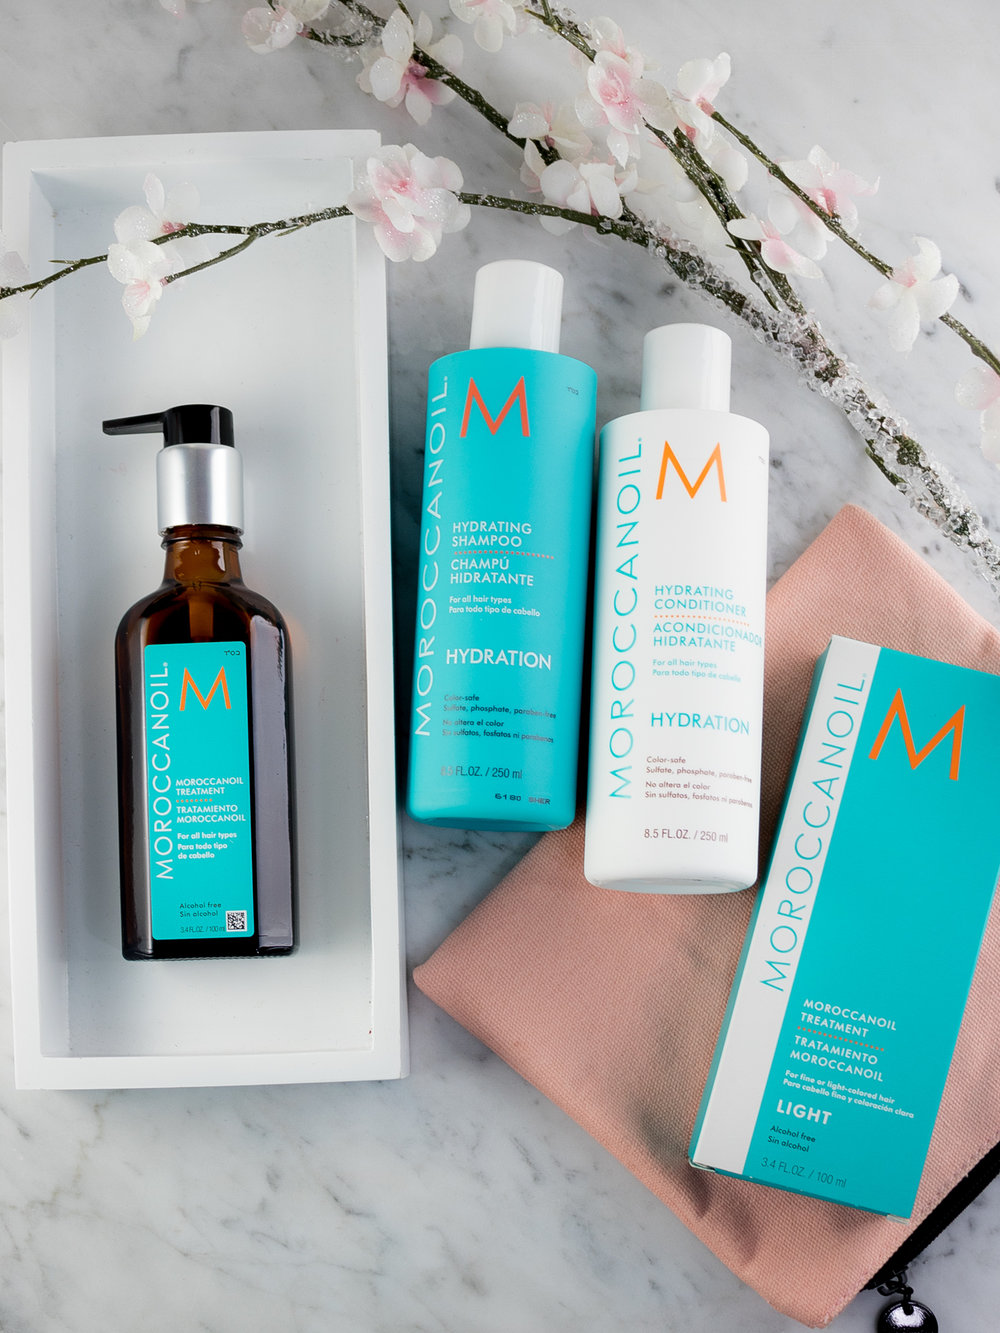 Hair Hydration Help from Moroccanoil